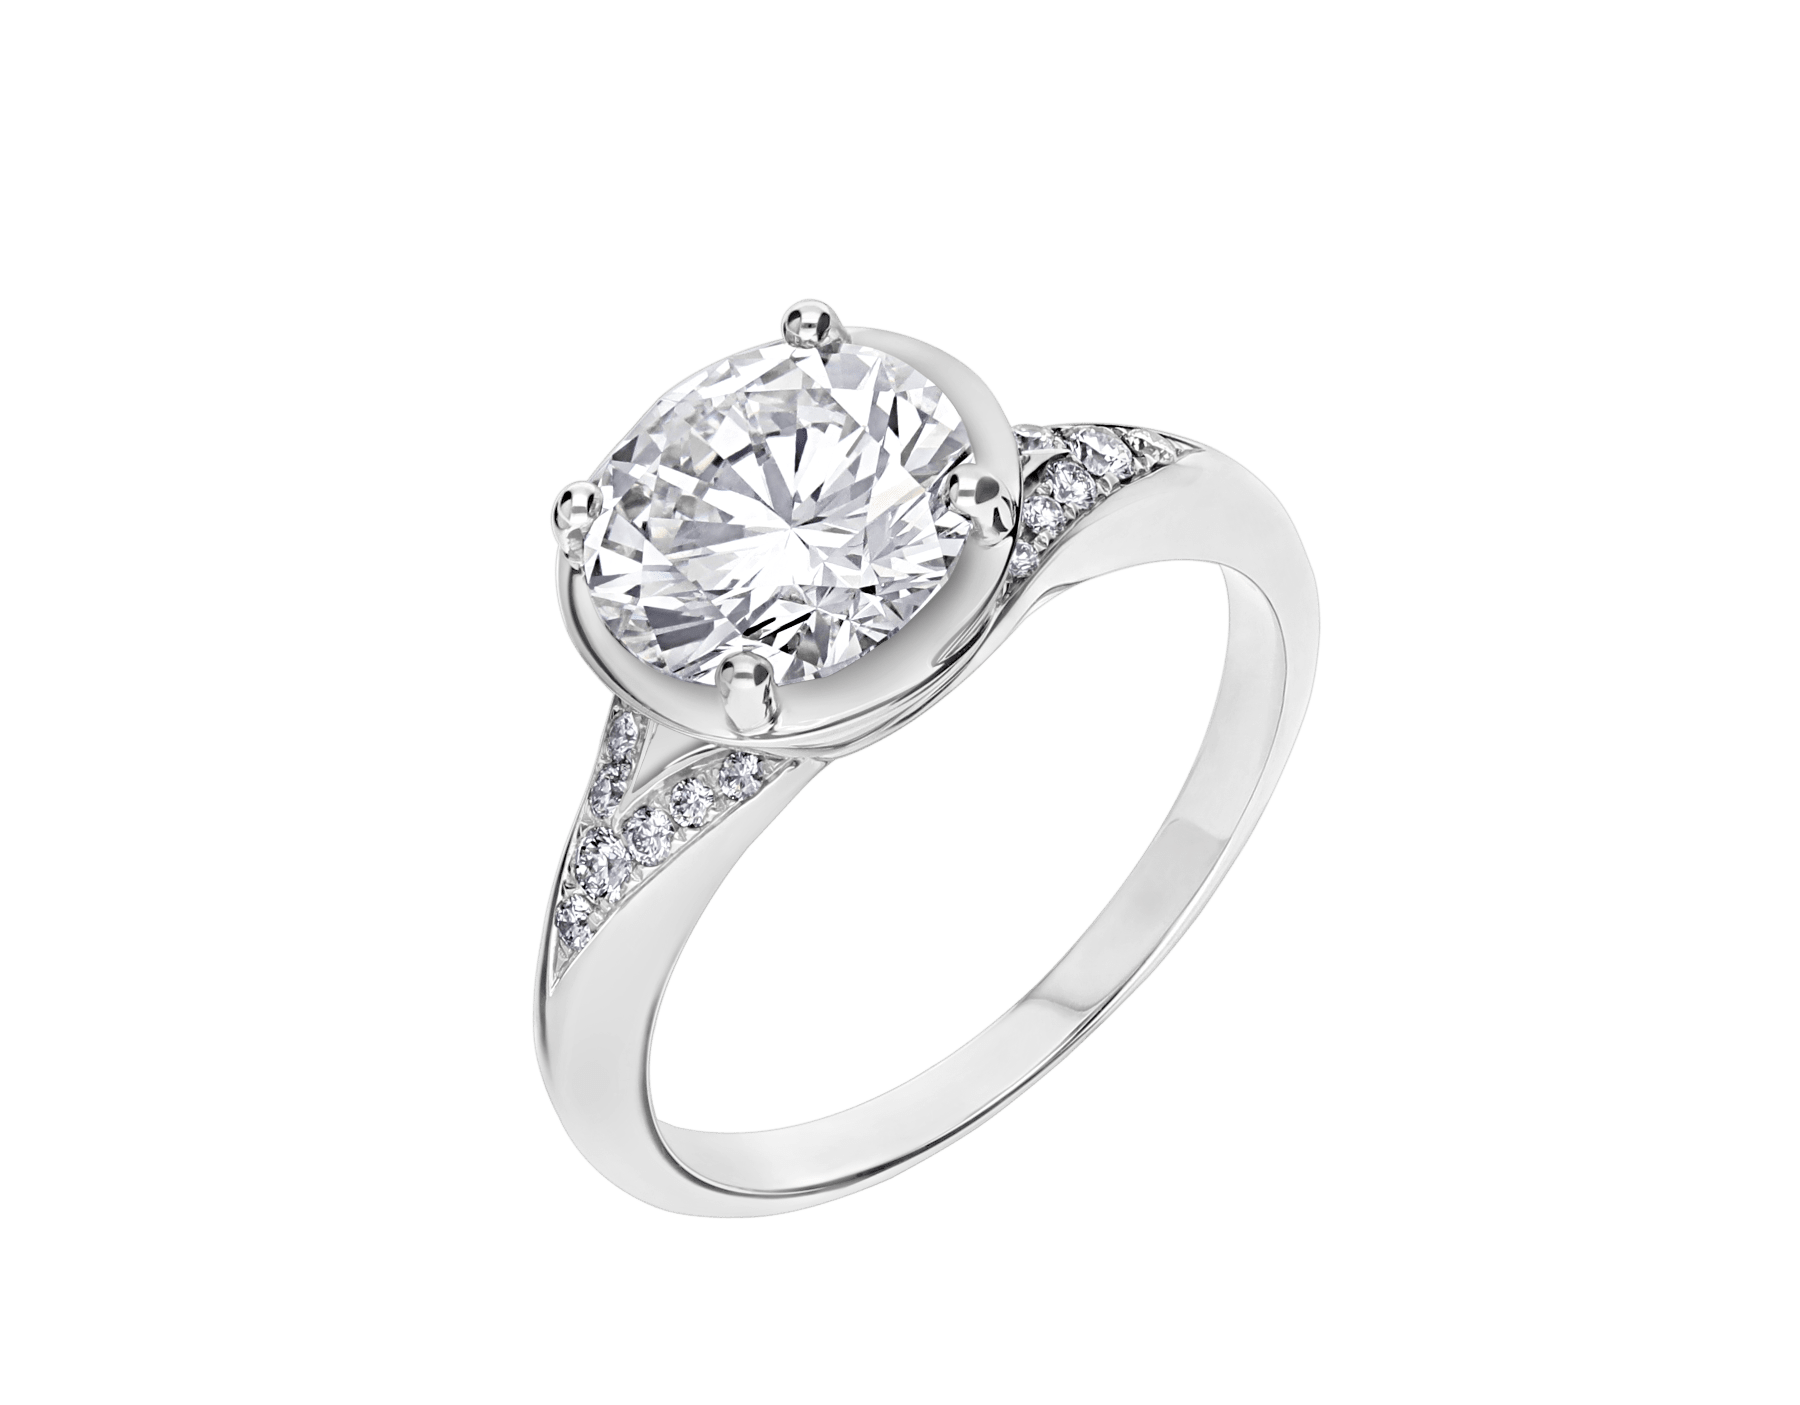 Incontro d'Amore ring in platinum with round brilliant-cut diamond and pavé diamonds. Available from 0.20 ct. As its pavé rows embrace a diamond apex, Incontro d'Amore joins two hearts as one. 355808 image 2